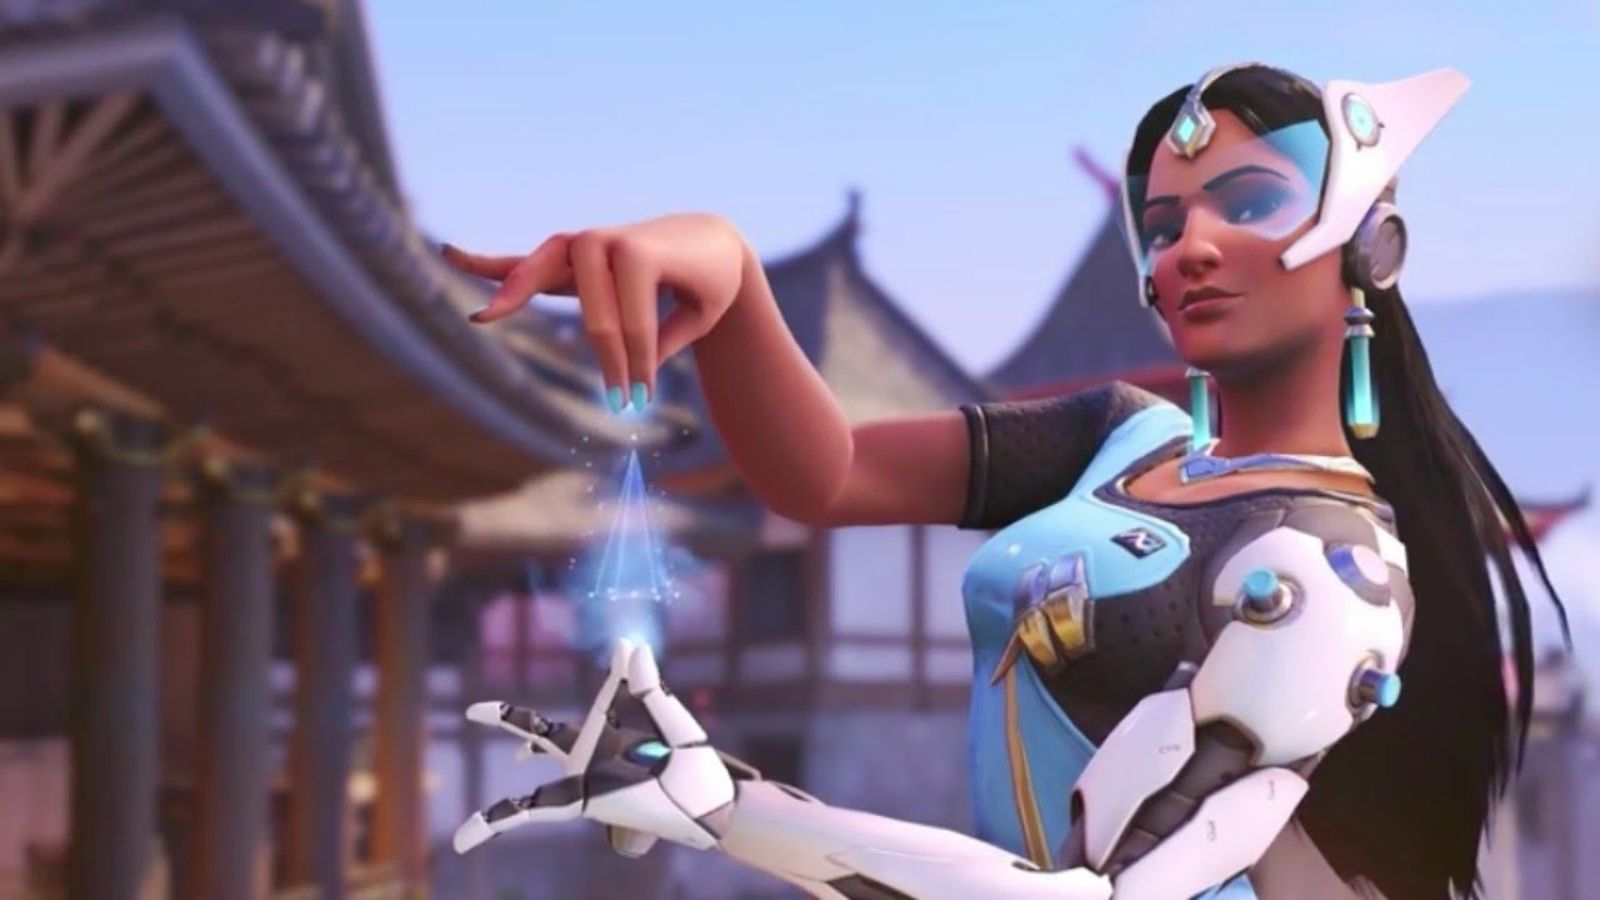 God Hd Wallpaper 1920x1080 3d Blizzard S Giving Overwatch S Symmetra A Second Ultimate